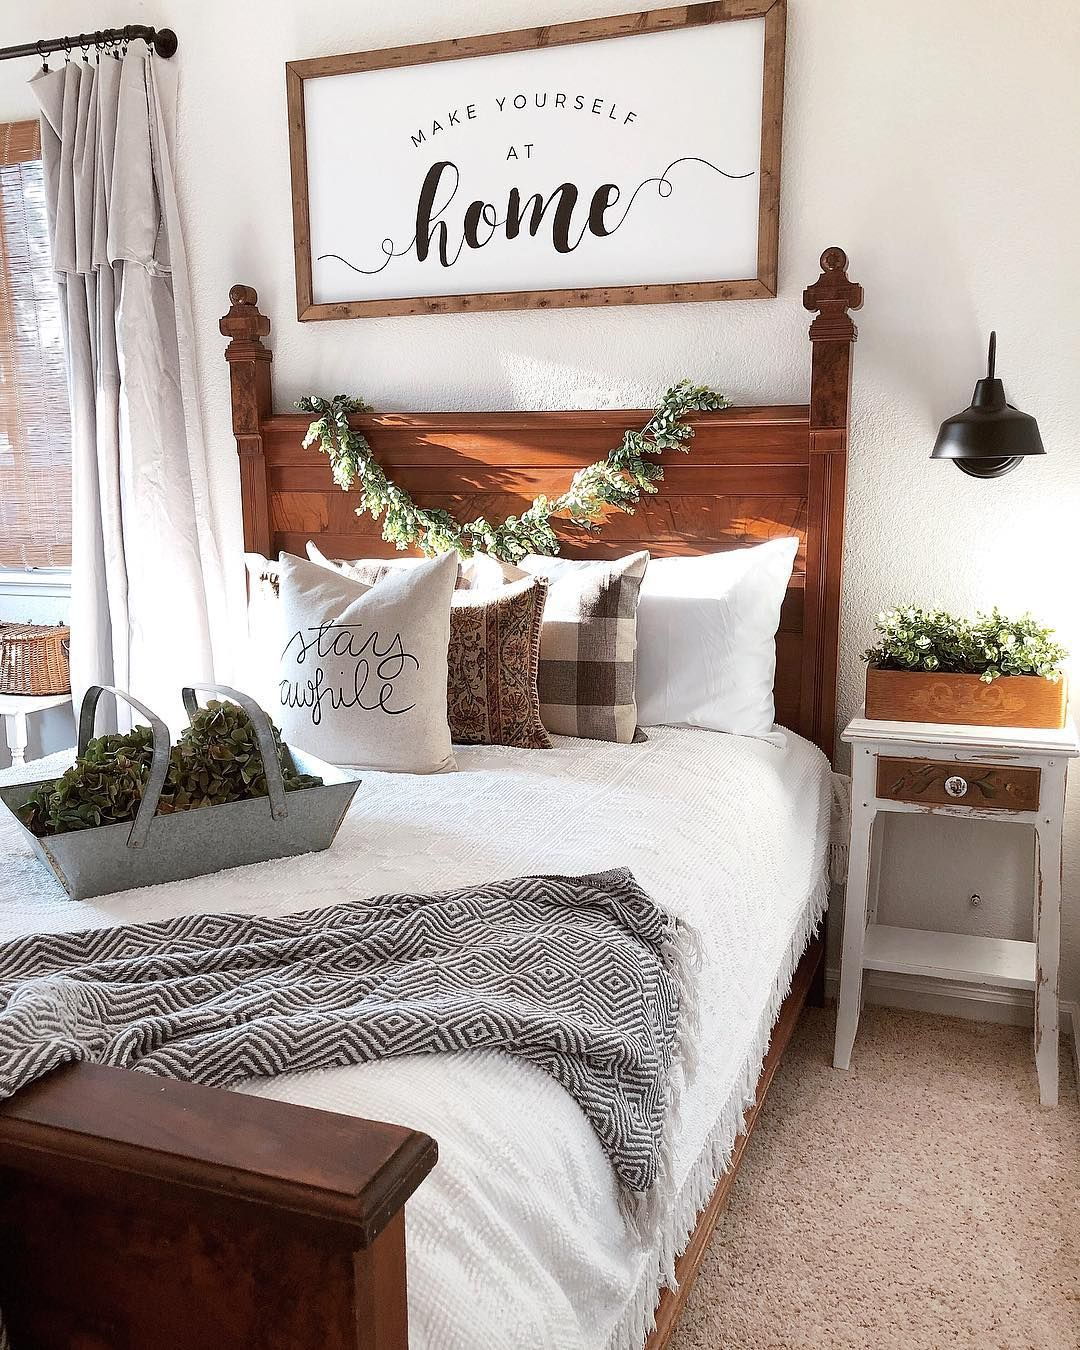 Farmhouse Guestroom Decor With Old Fashioned Wood Bed Grey Night Stand And Throw Sconce Lighting Make You Guest Bedroom Decor Remodel Bedroom Guest Bedrooms